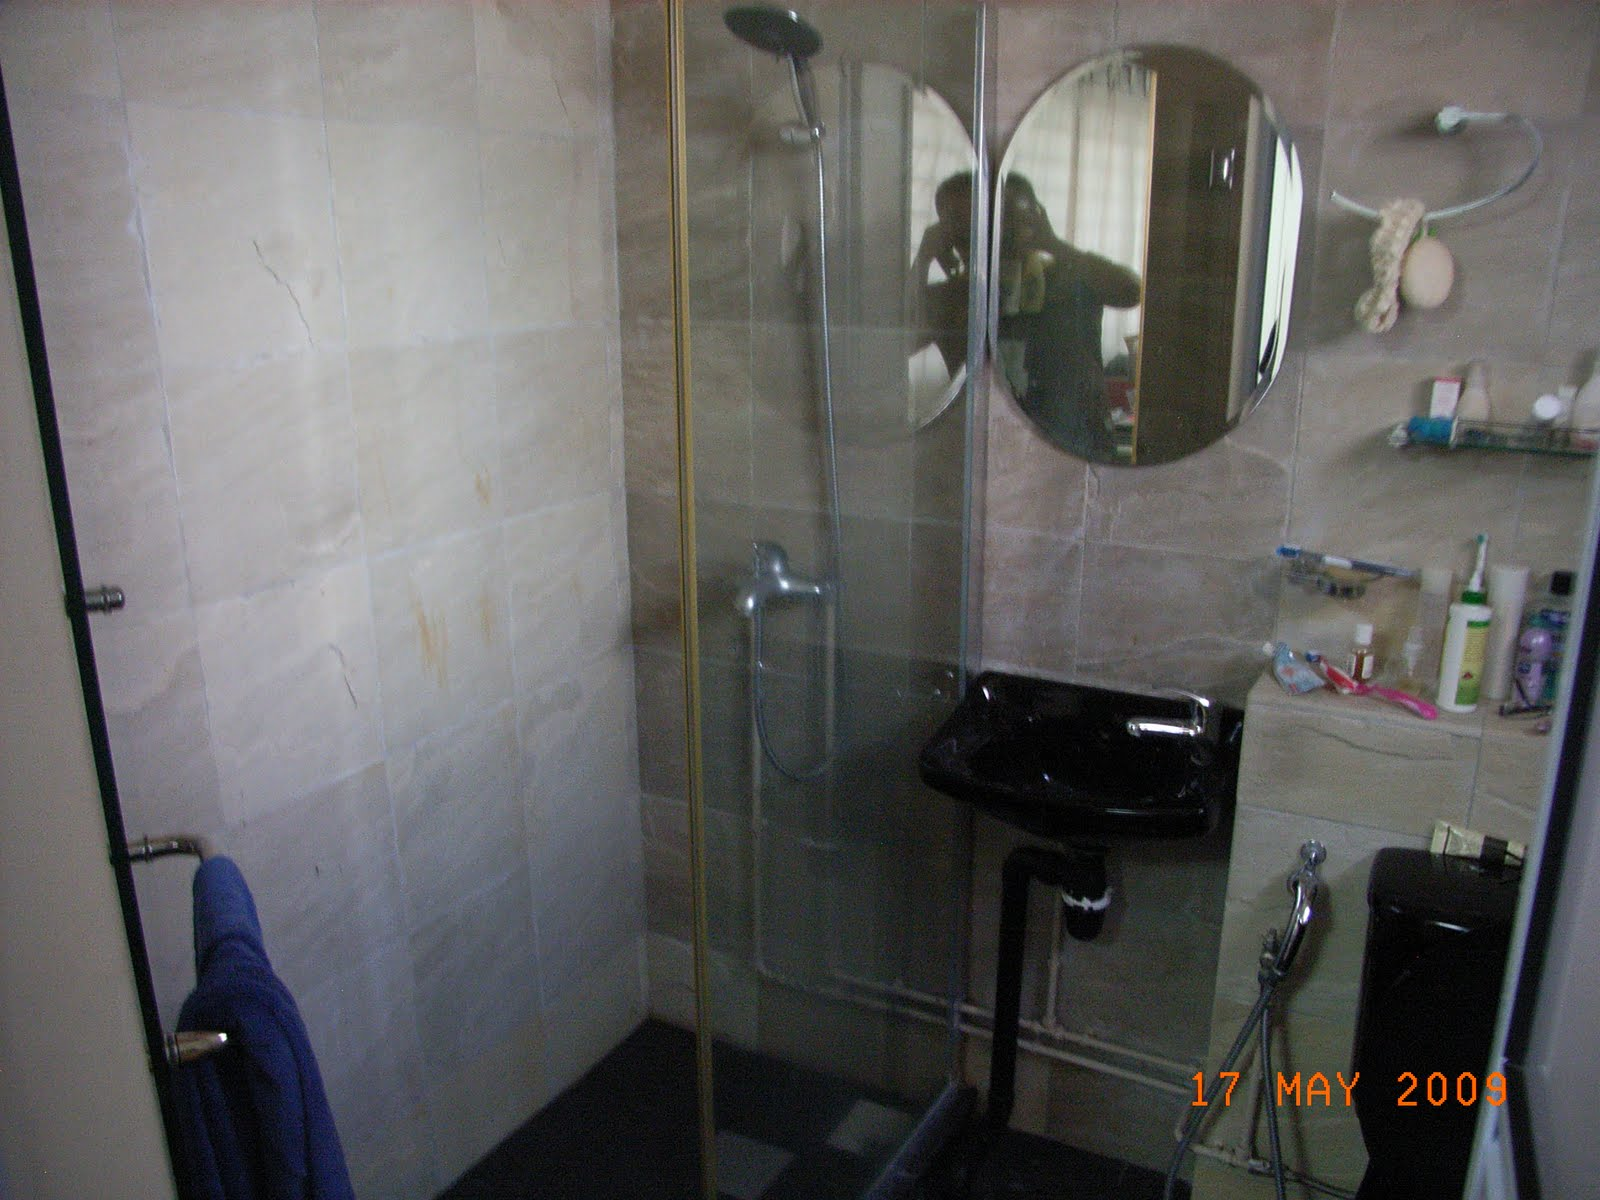 Our Hdb Flat Renovation In 2009 Improved Toilet Layout